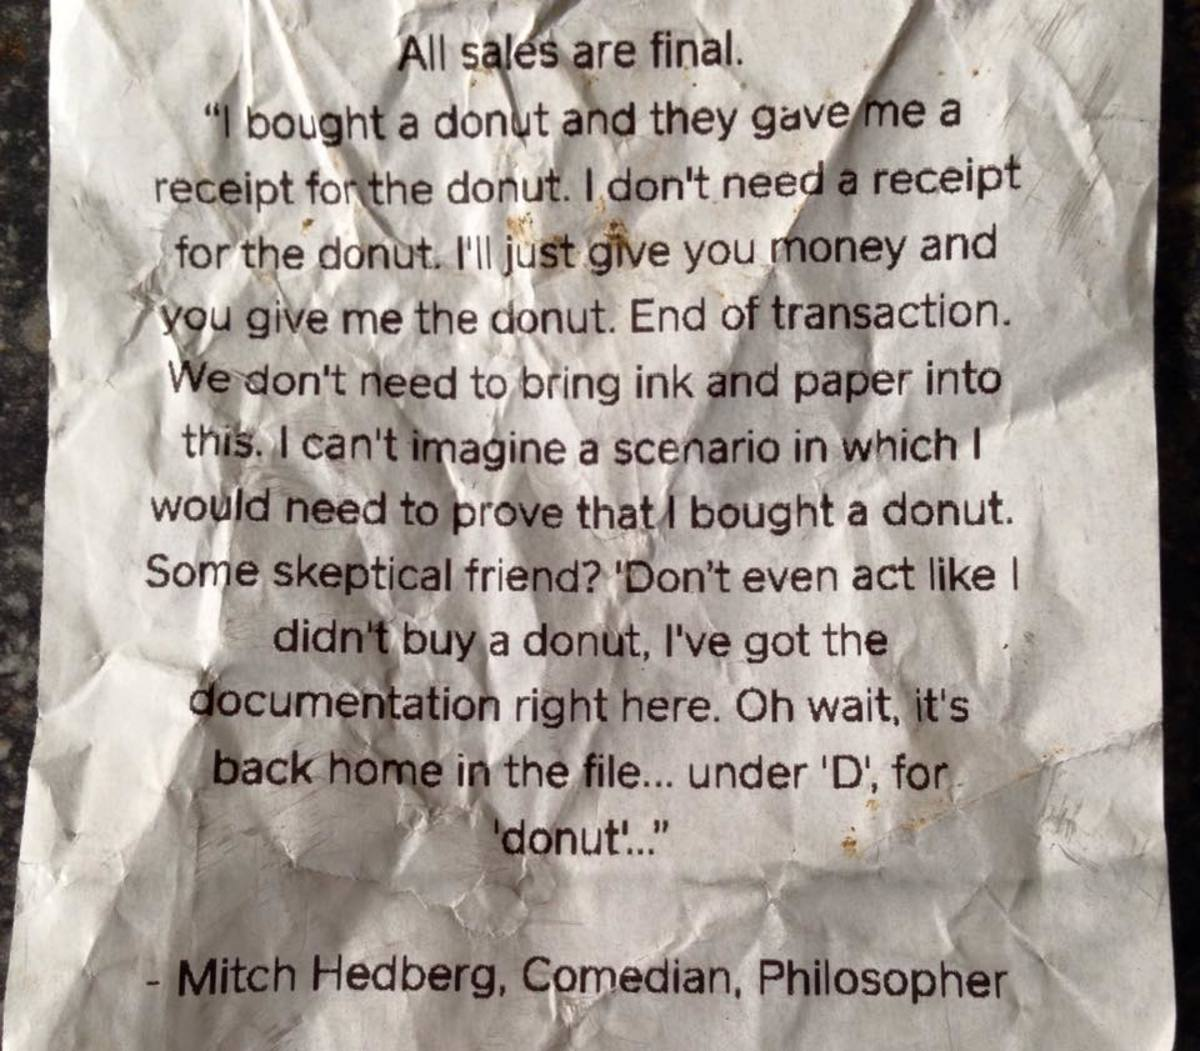 The back of doughnut shop receipt.